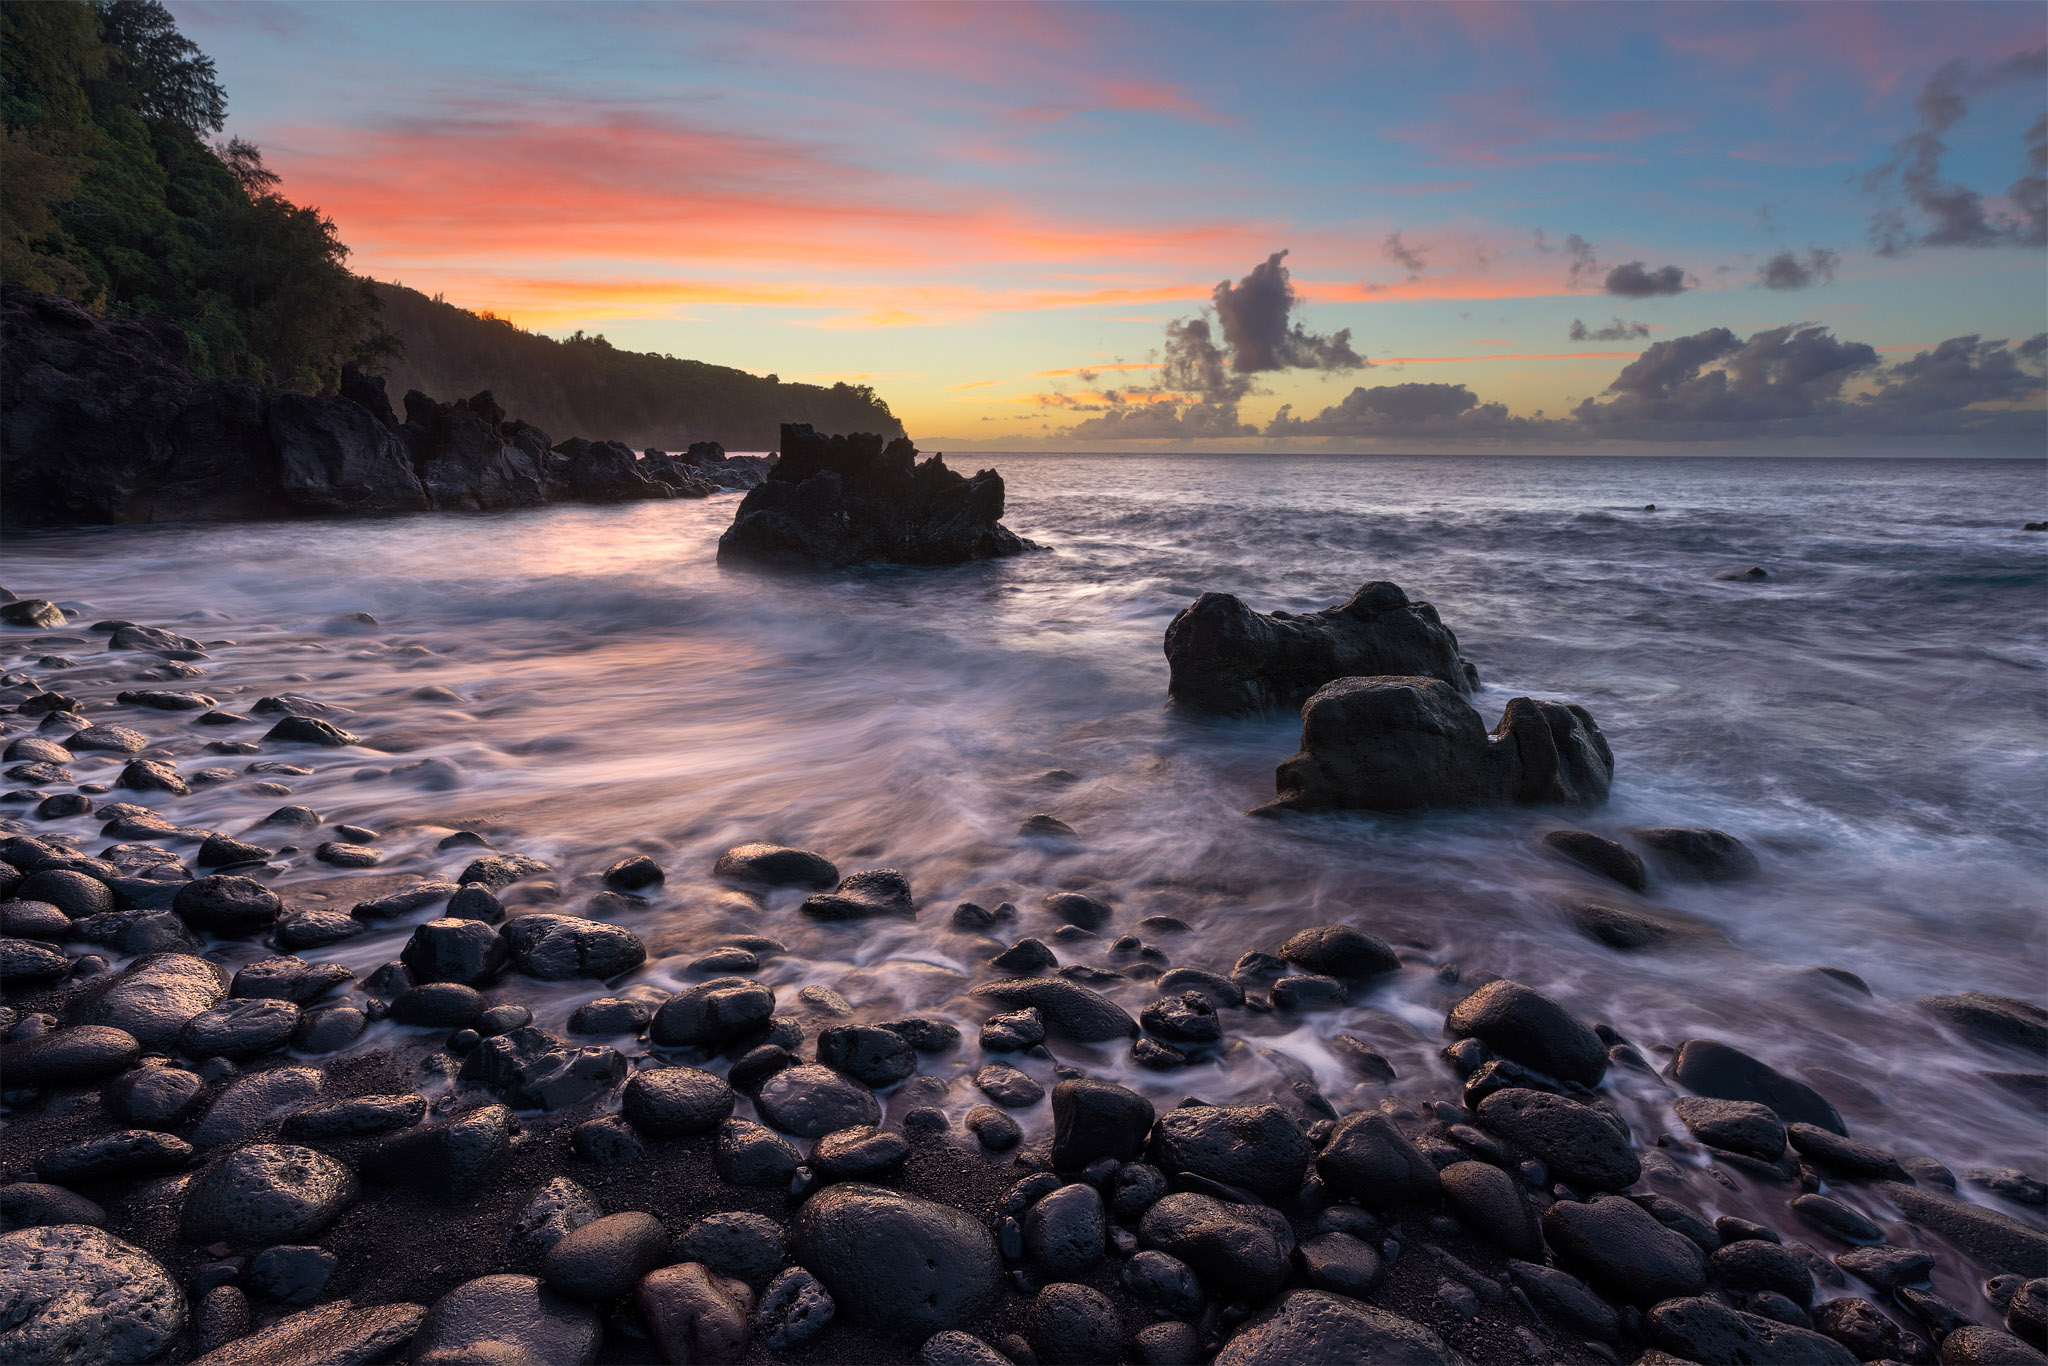 Down in Laupahoehoe, there is a beautiful black sand beach which lies at the mouth of a stream. The beach is covered in river...